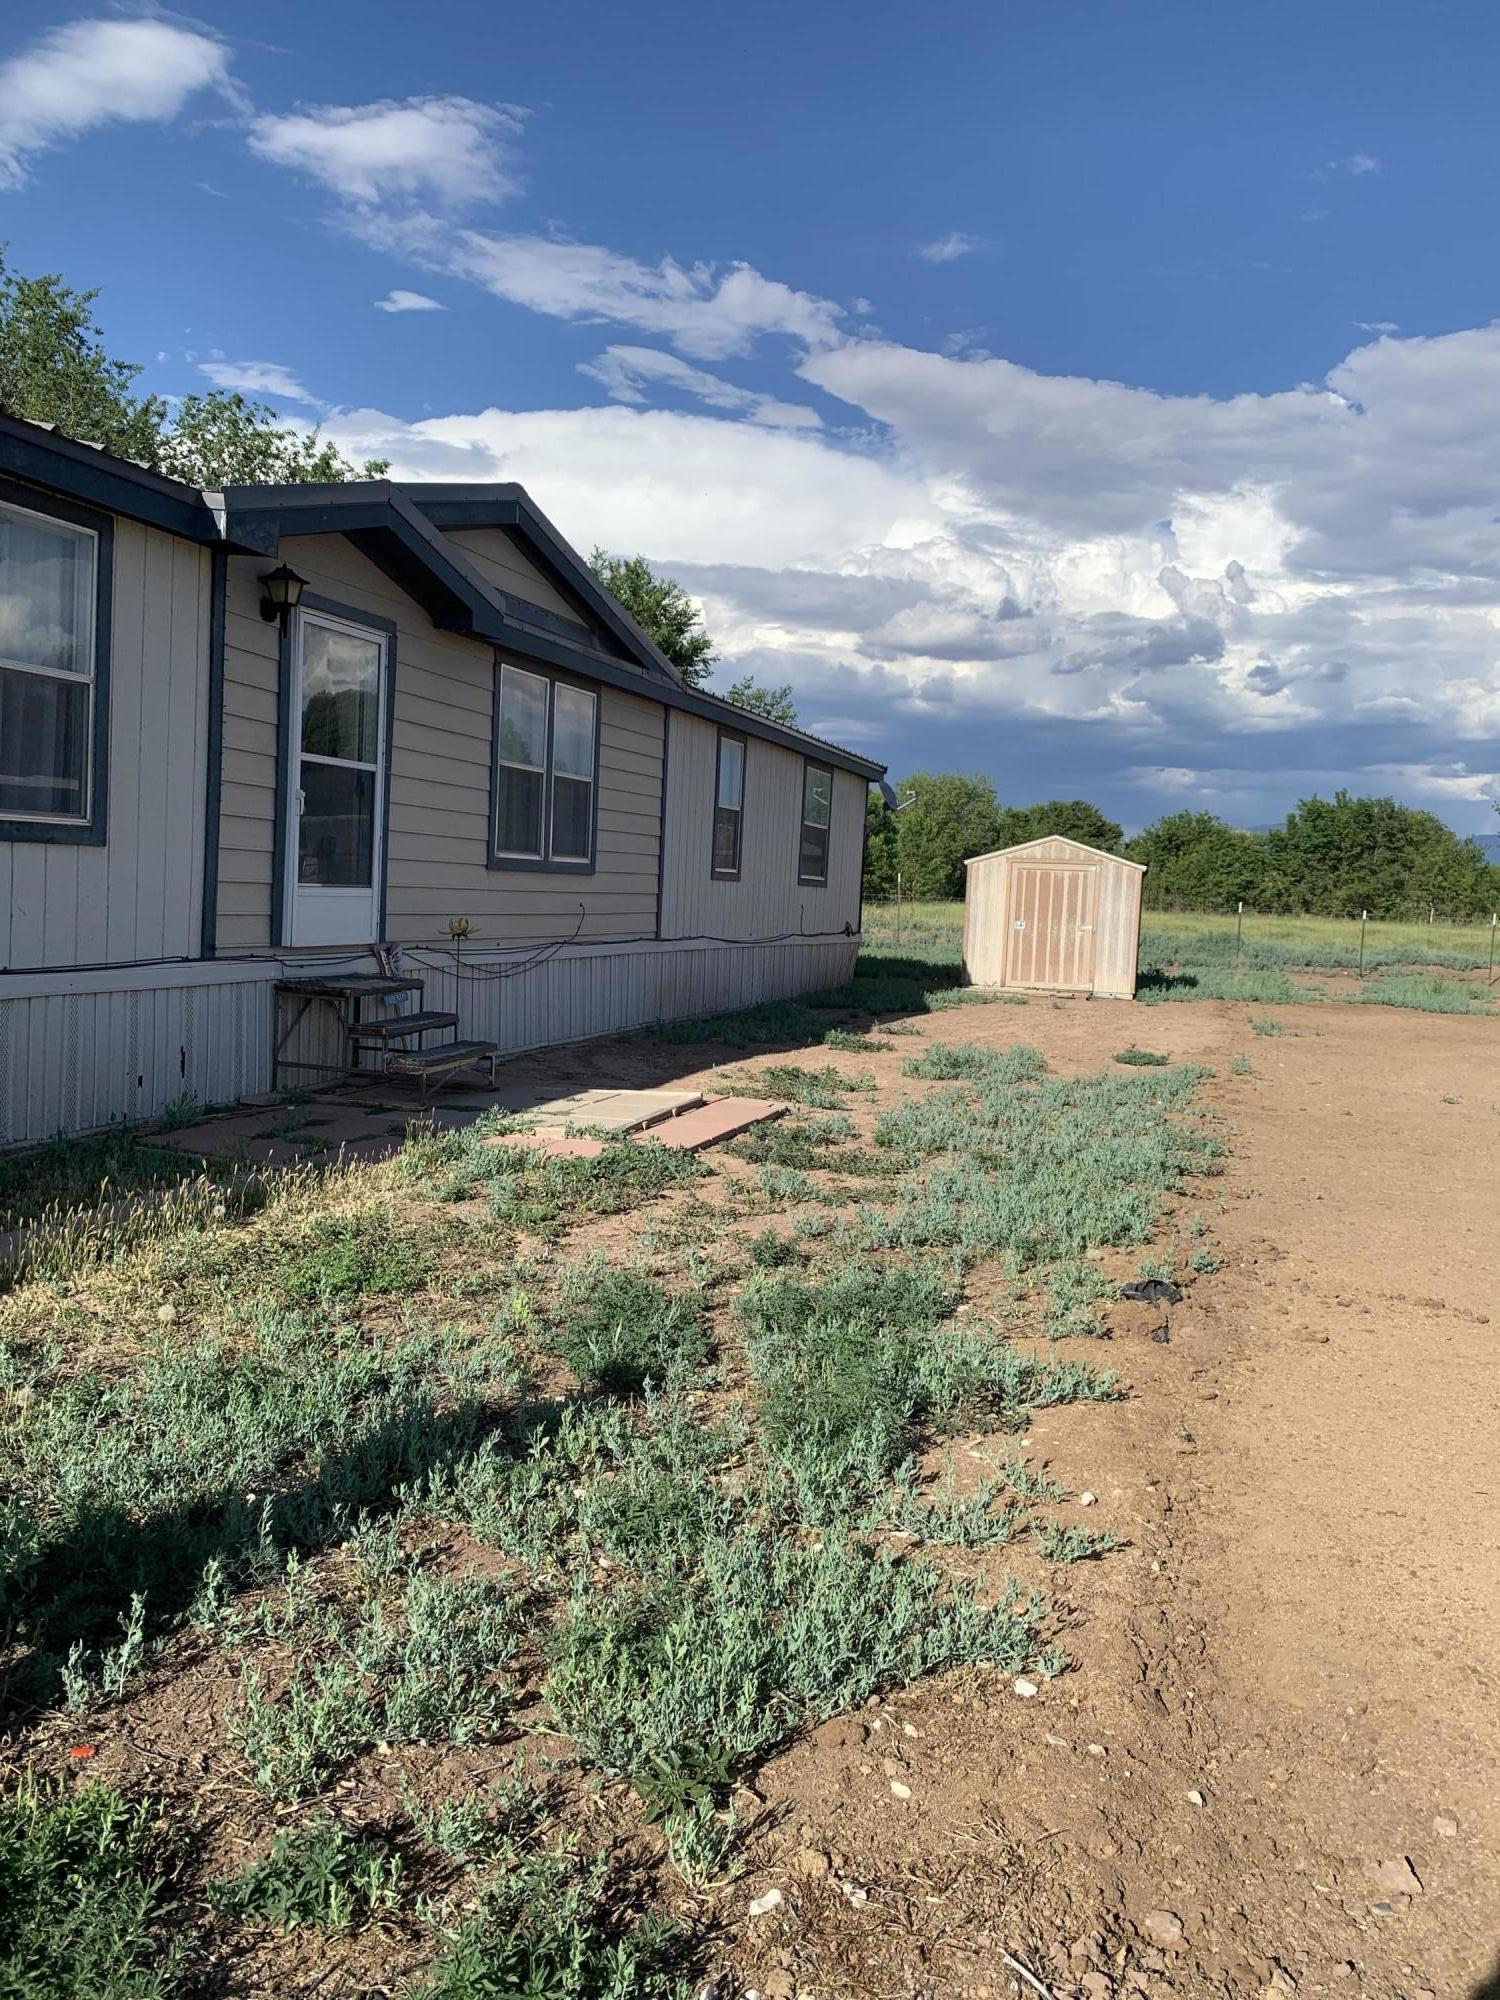 This listing will not last long!! The manufactured home is priced to sell, It features  4 bedrooms 2 baths with 2 living areas. It also has a big family kitchen, walk in closets and refrigerated air.  You get a country feel all while being close to stores and restaurants. Schedule your showing today!